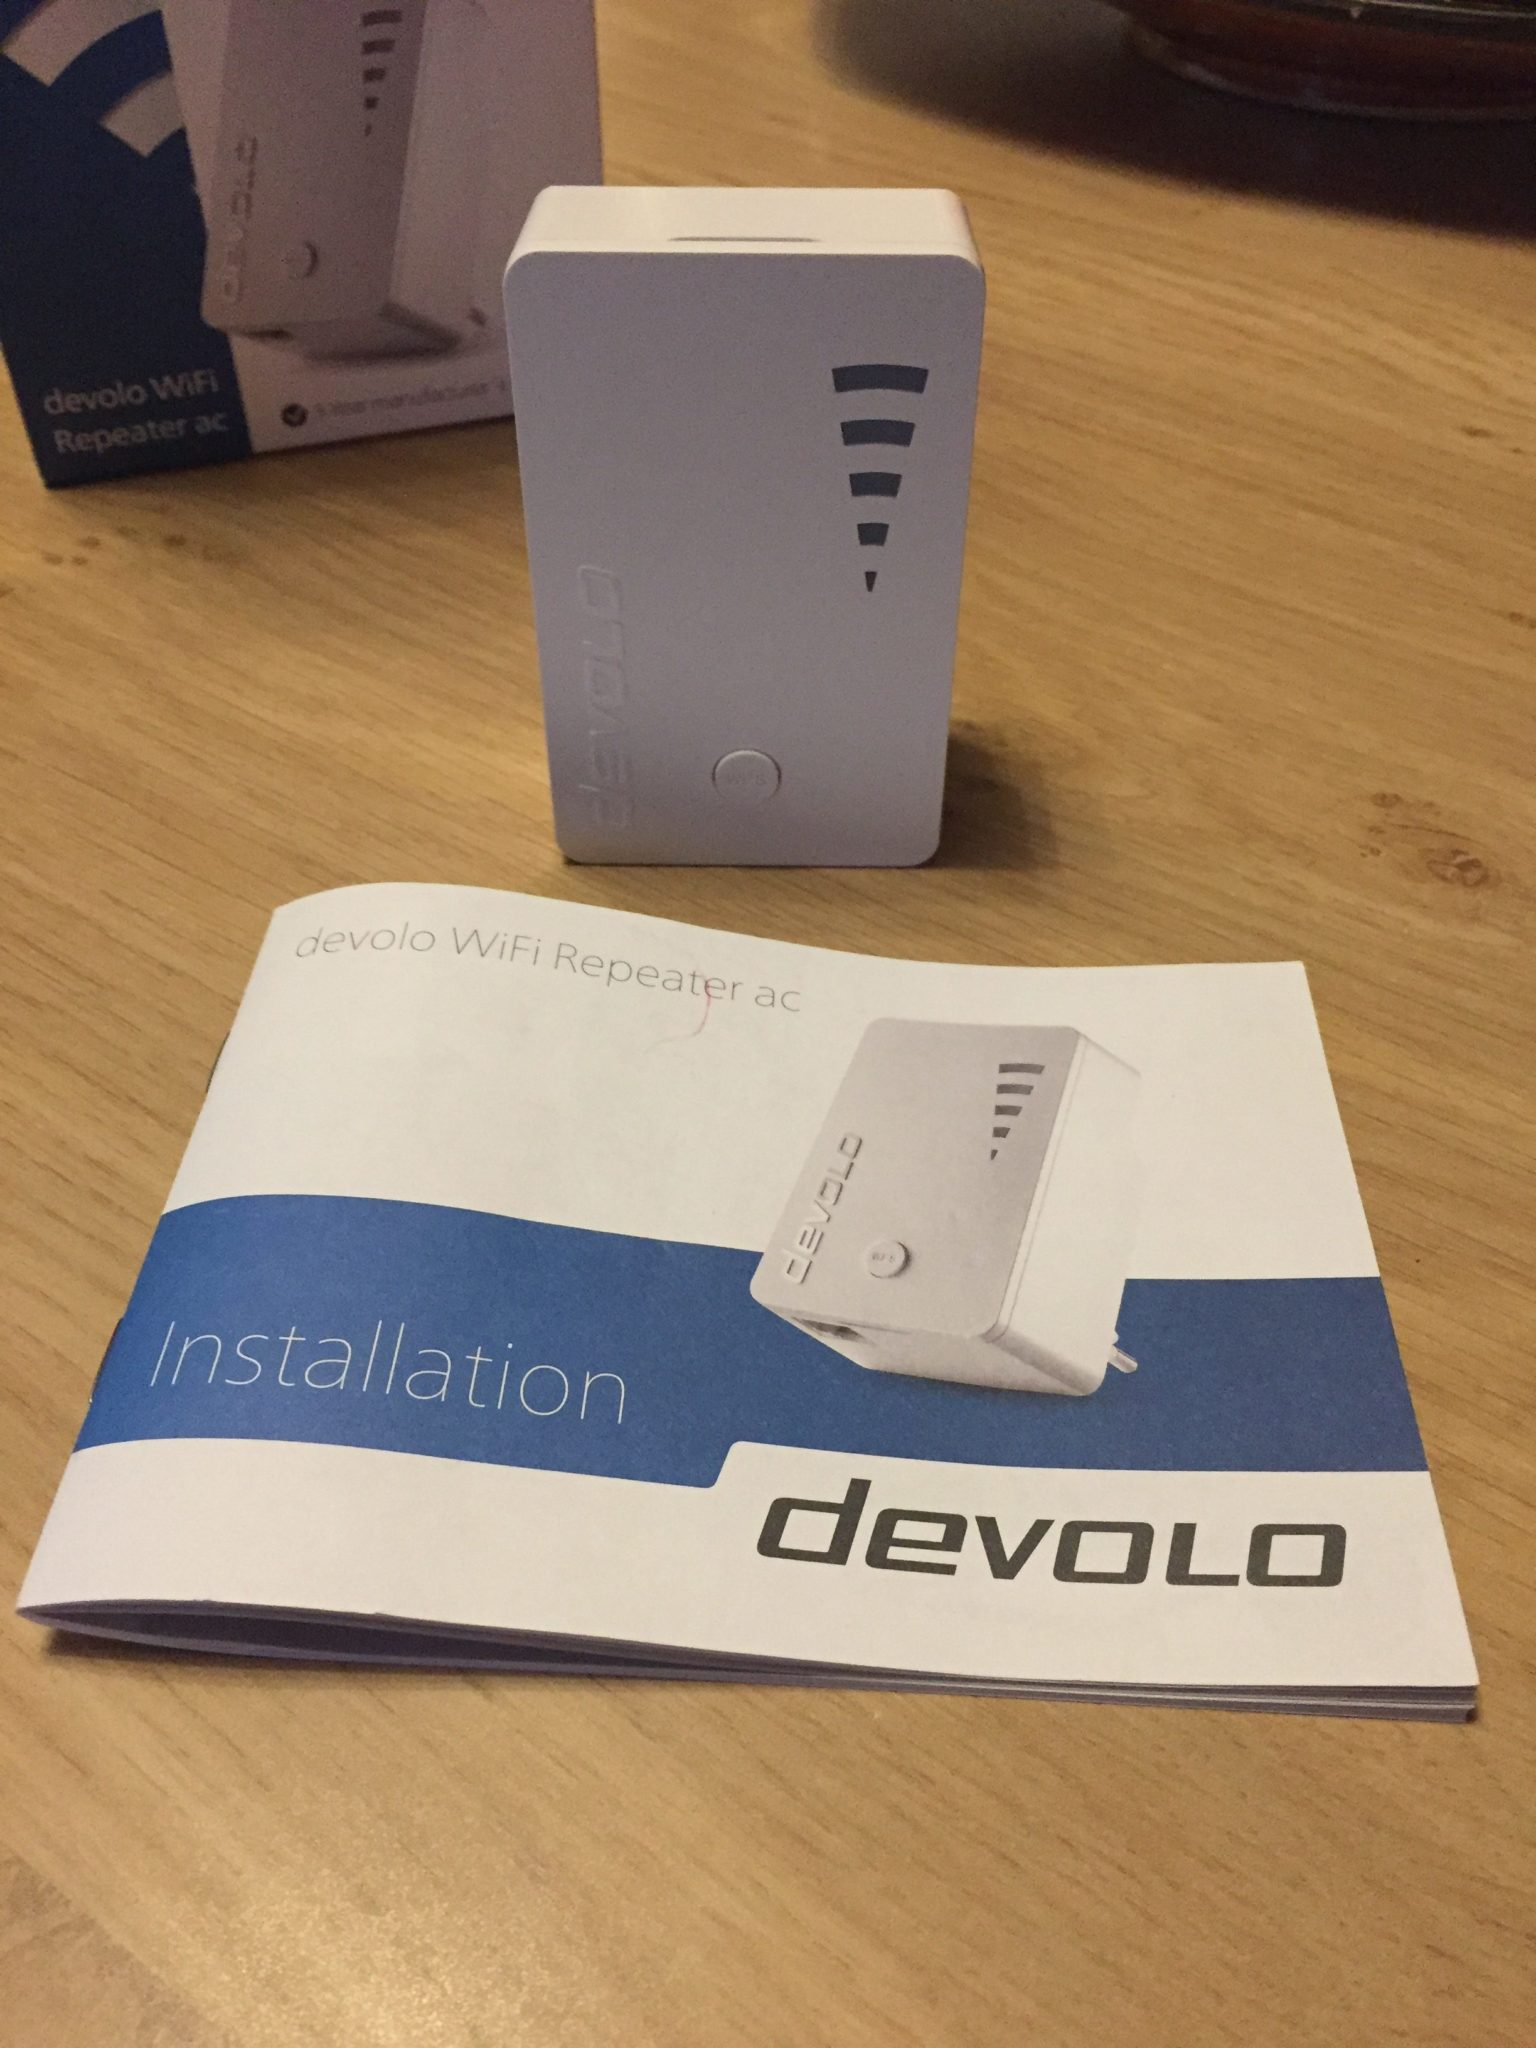 IMG_1718-e1484055283262 Devolo WIFI Repeater ac